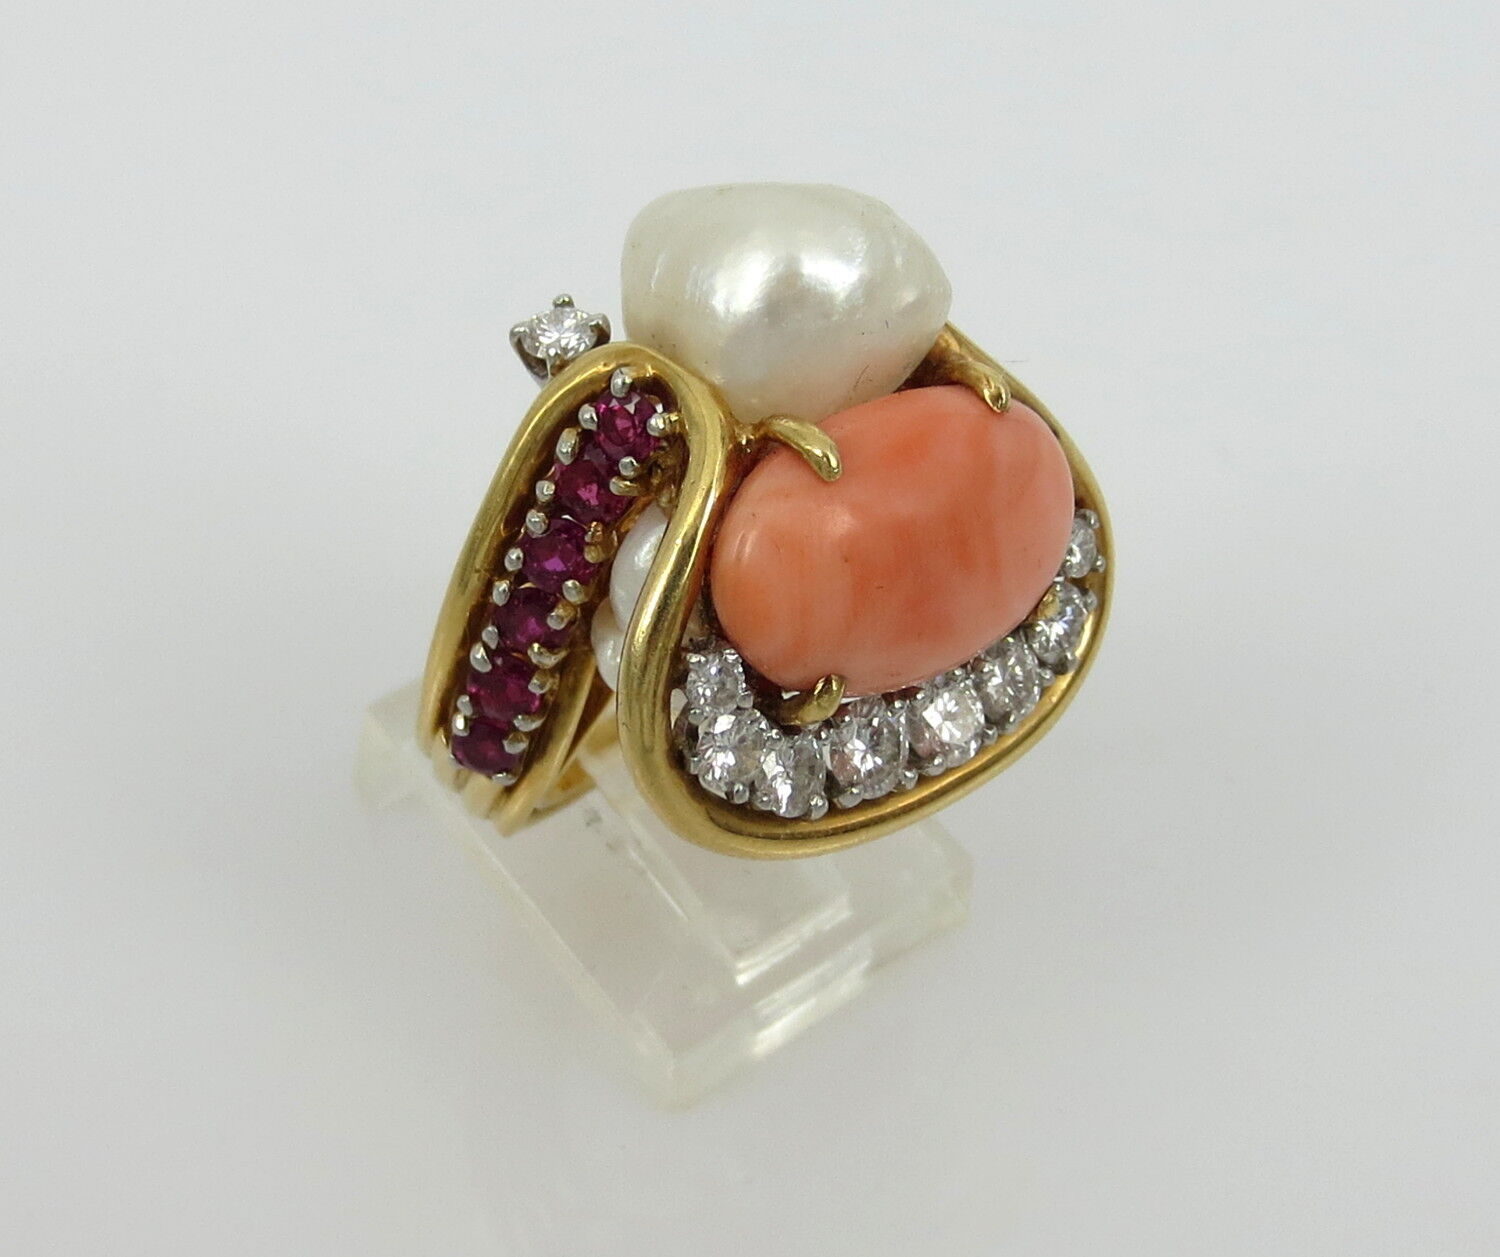 VINTAGE ART PIECE RING 18KT.  YELLOW gold CORAL DIAMONDS AND RUBIES